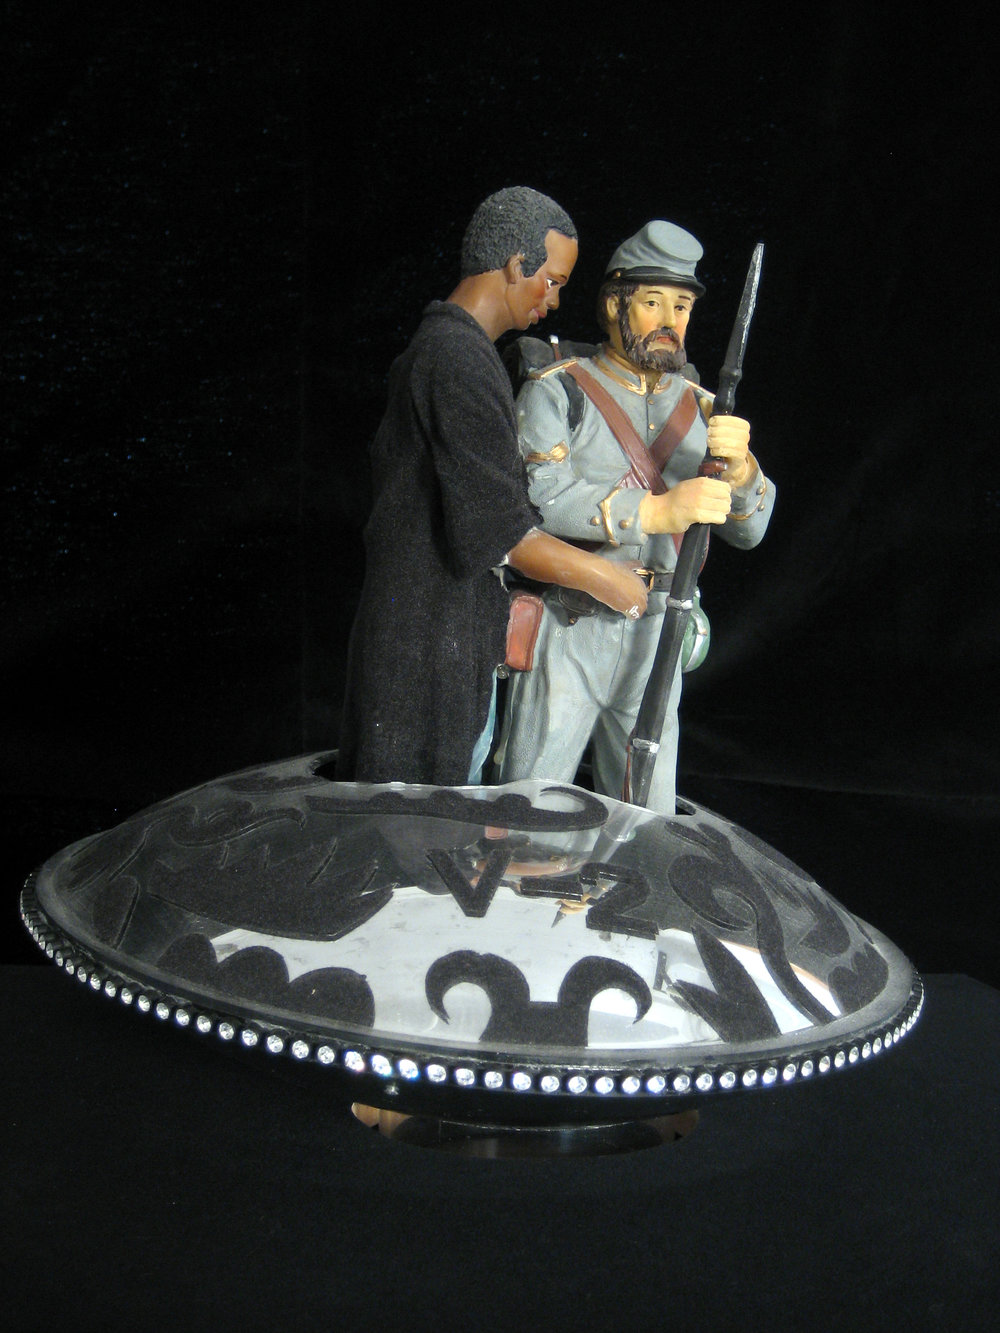 Adam and Steve (V Ship 2) - ceramic parts, plexiglass, velour flocking, rhinestones, and rotating base21 x 18 x 18 in.